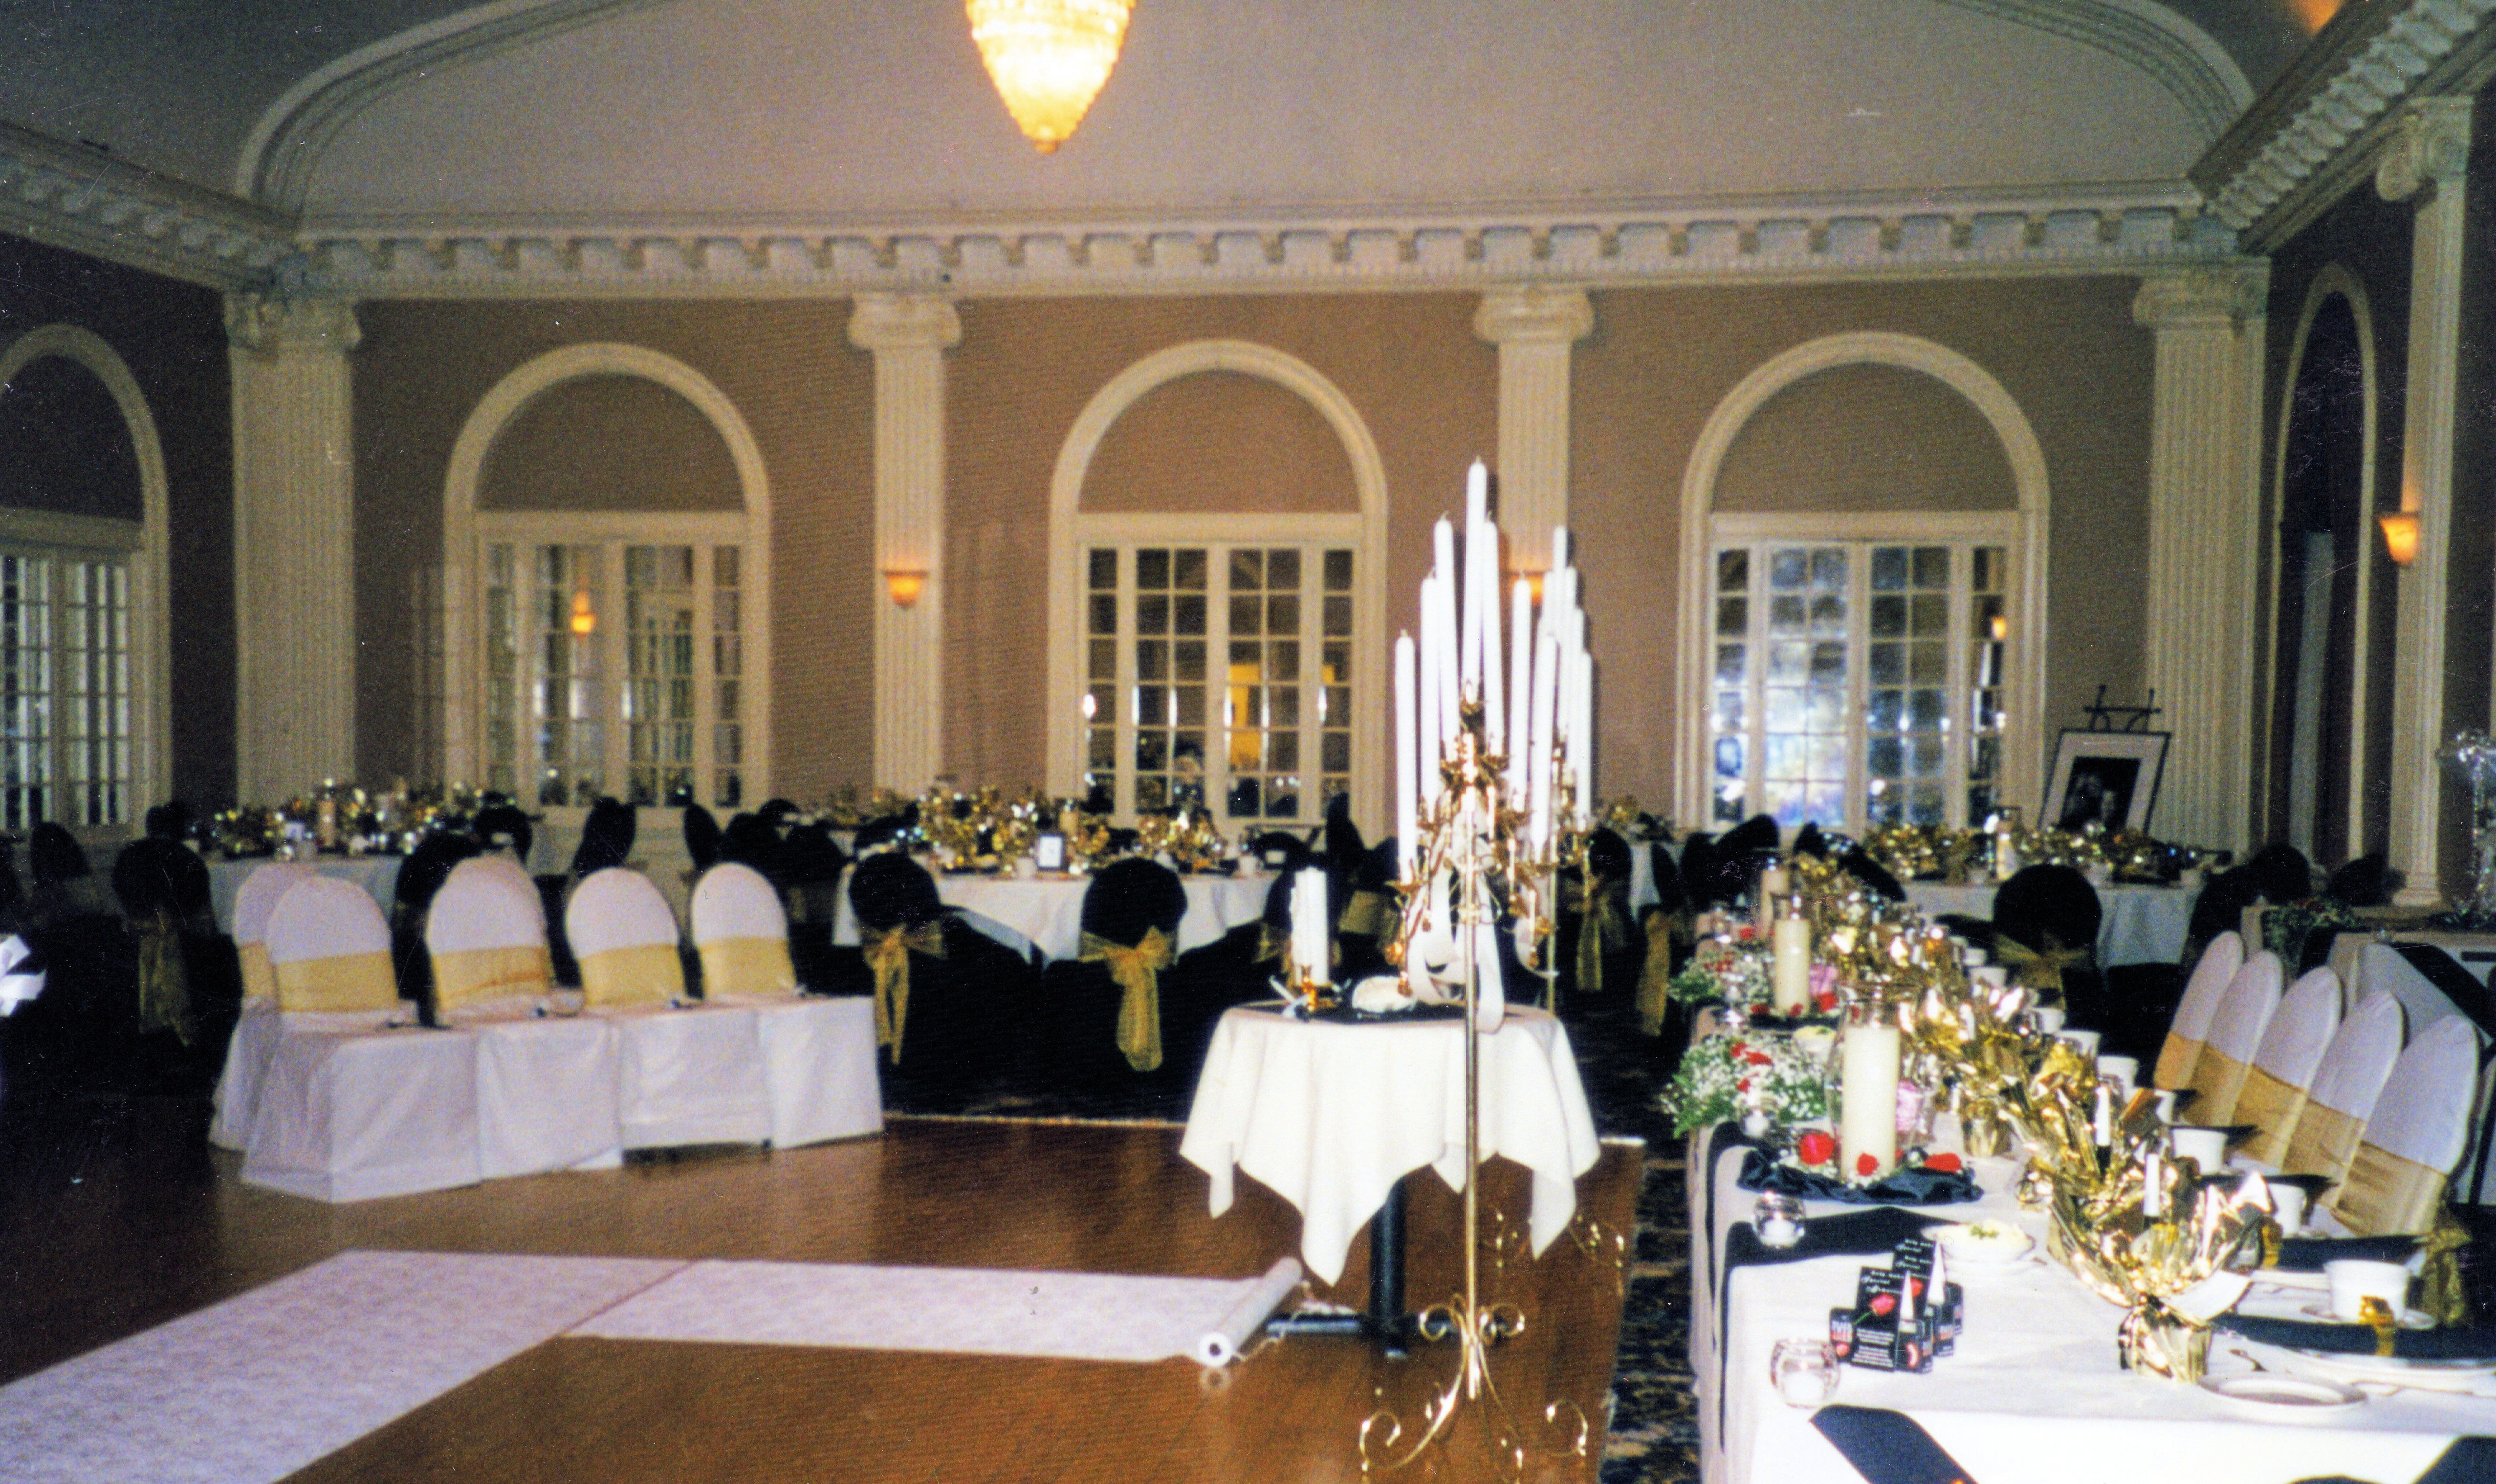 One Of Many Wedding Venue Ceremony Reception Options In The Ious Ballroom At Rochester Club